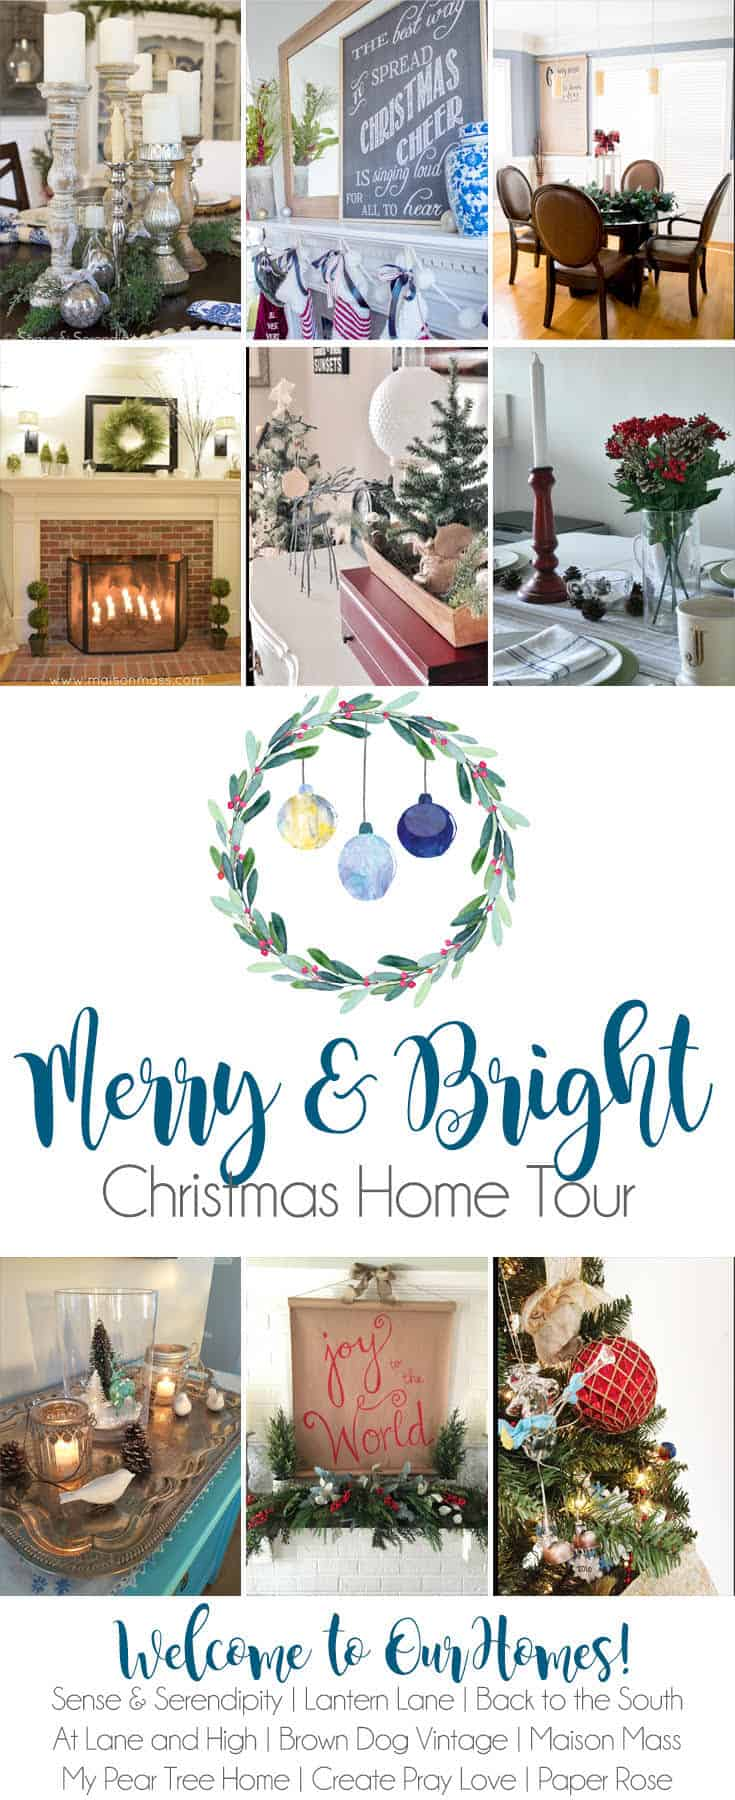 Merry and Bright Christmas Home Tour | My Pear Tree Home